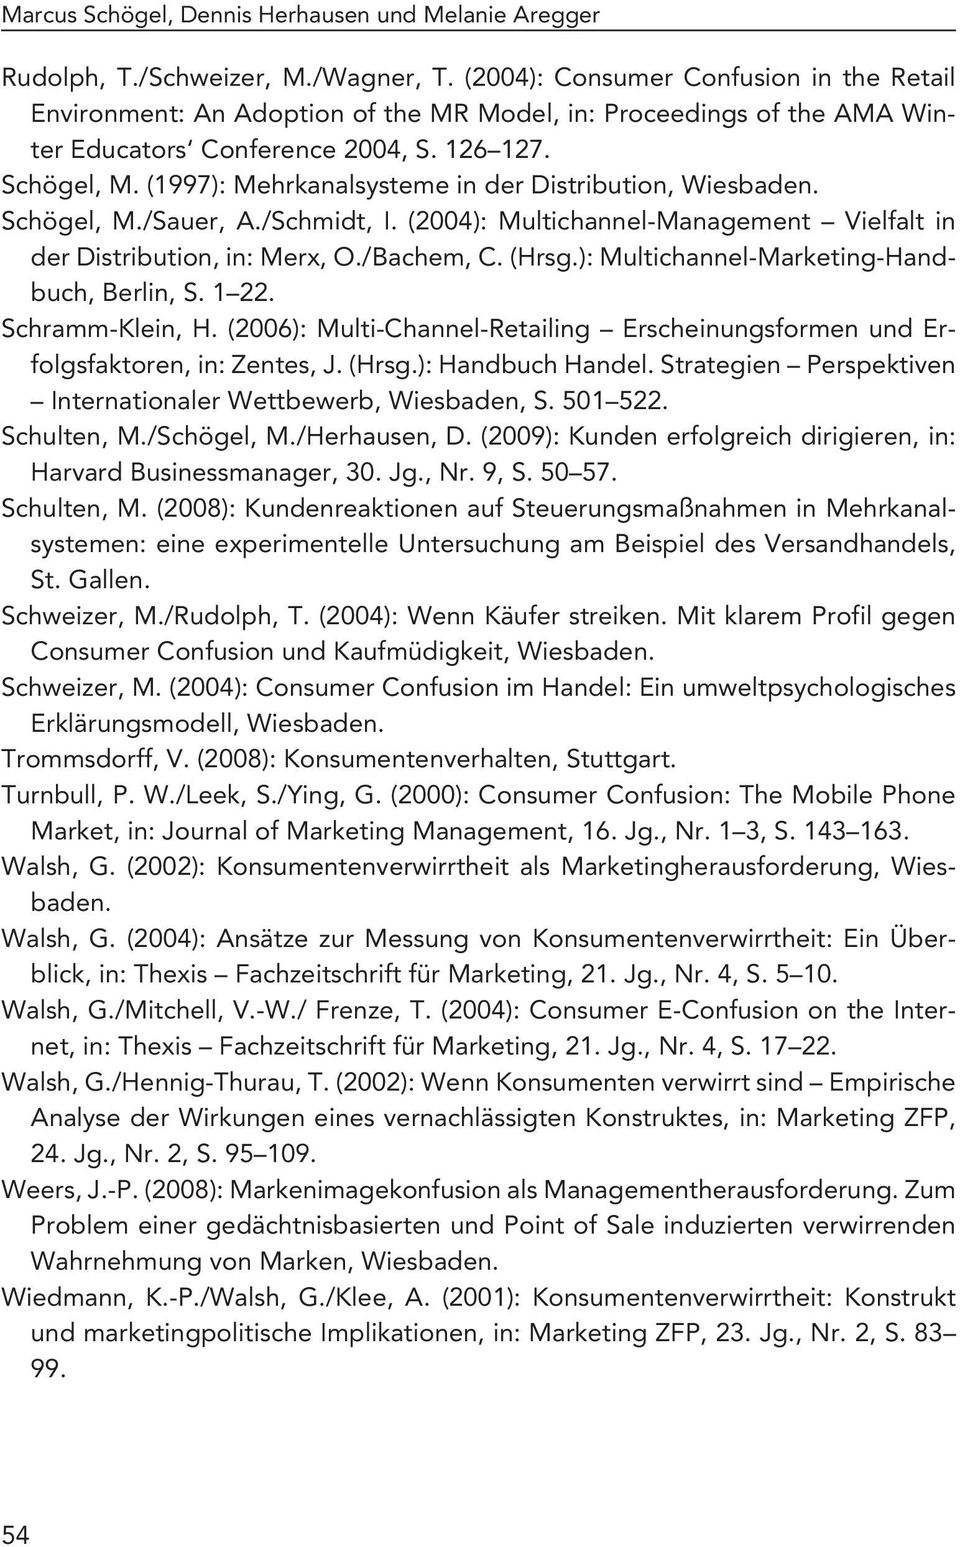 (1997): Mehrkanalsysteme in der Distribution, Wiesbaden. Schögel, M./Sauer, A./Schmidt, I. (2004): Multichannel-Management Vielfalt in der Distribution, in: Merx, O./Bachem, C. (Hrsg.